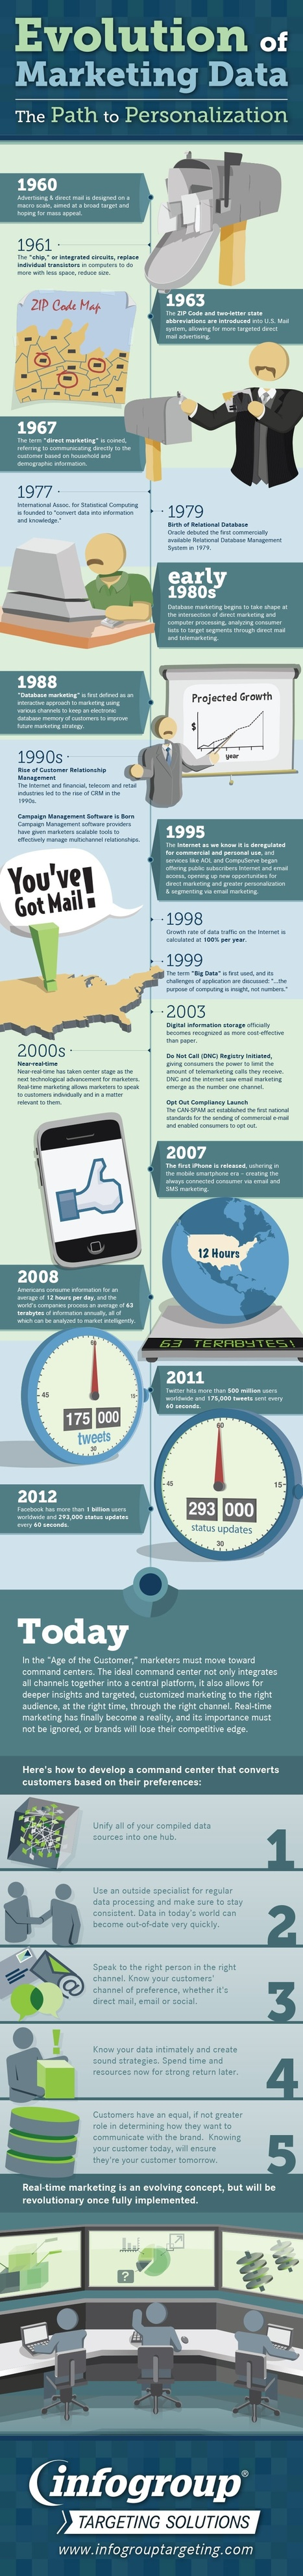 The Evolution Of Marketing Data – From Direct Mail To Twitter (1960-2012) [INFOGRAPHIC] - AllTwitter | Social Media Marketing | Scoop.it